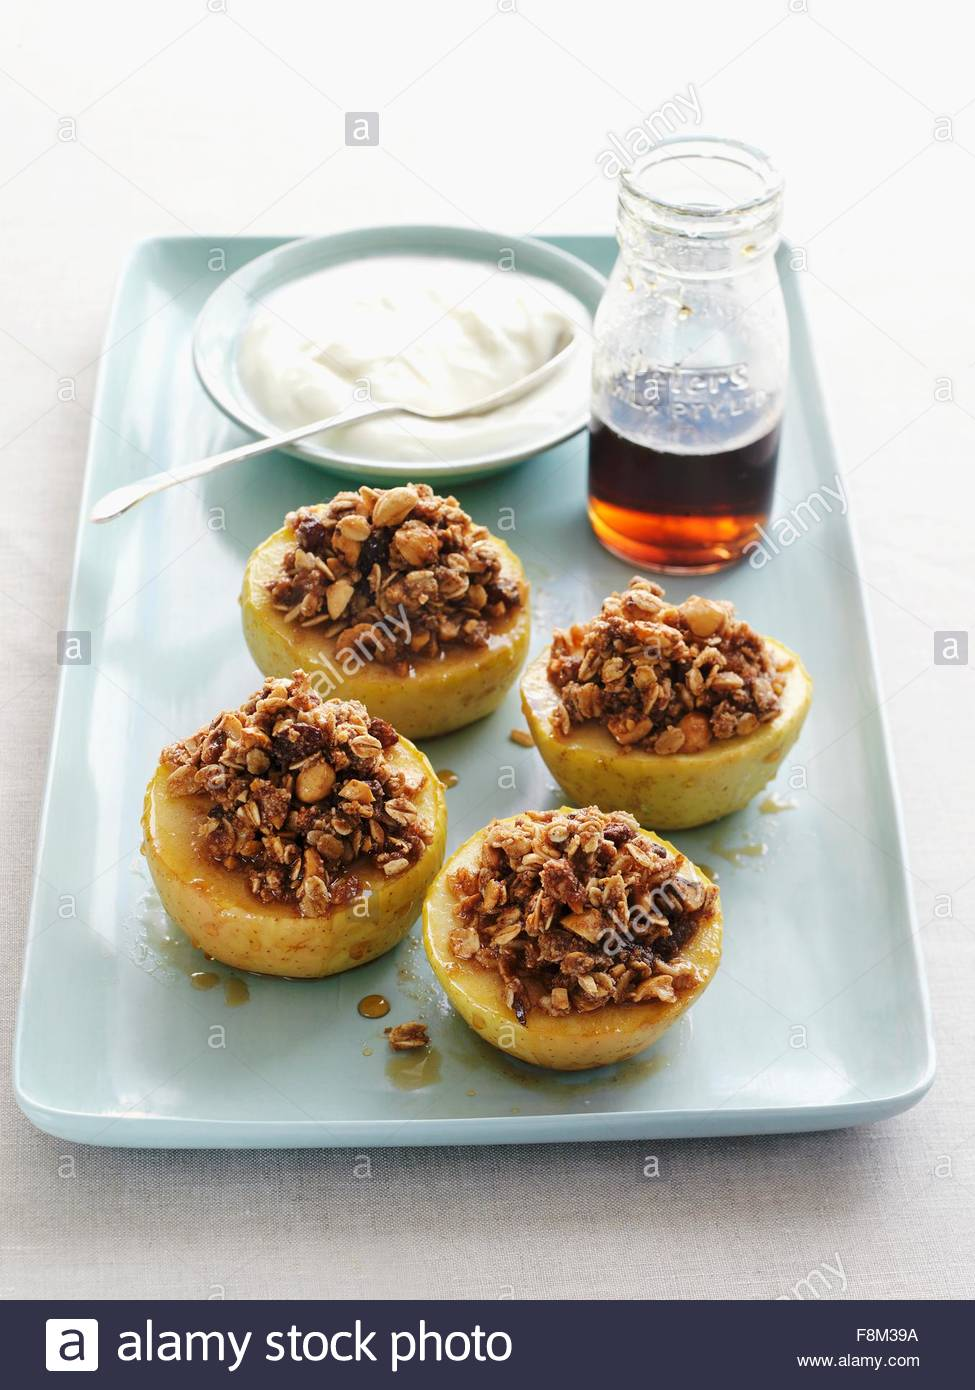 Stuffed baked apples, cream and maple syrup - Stock Image